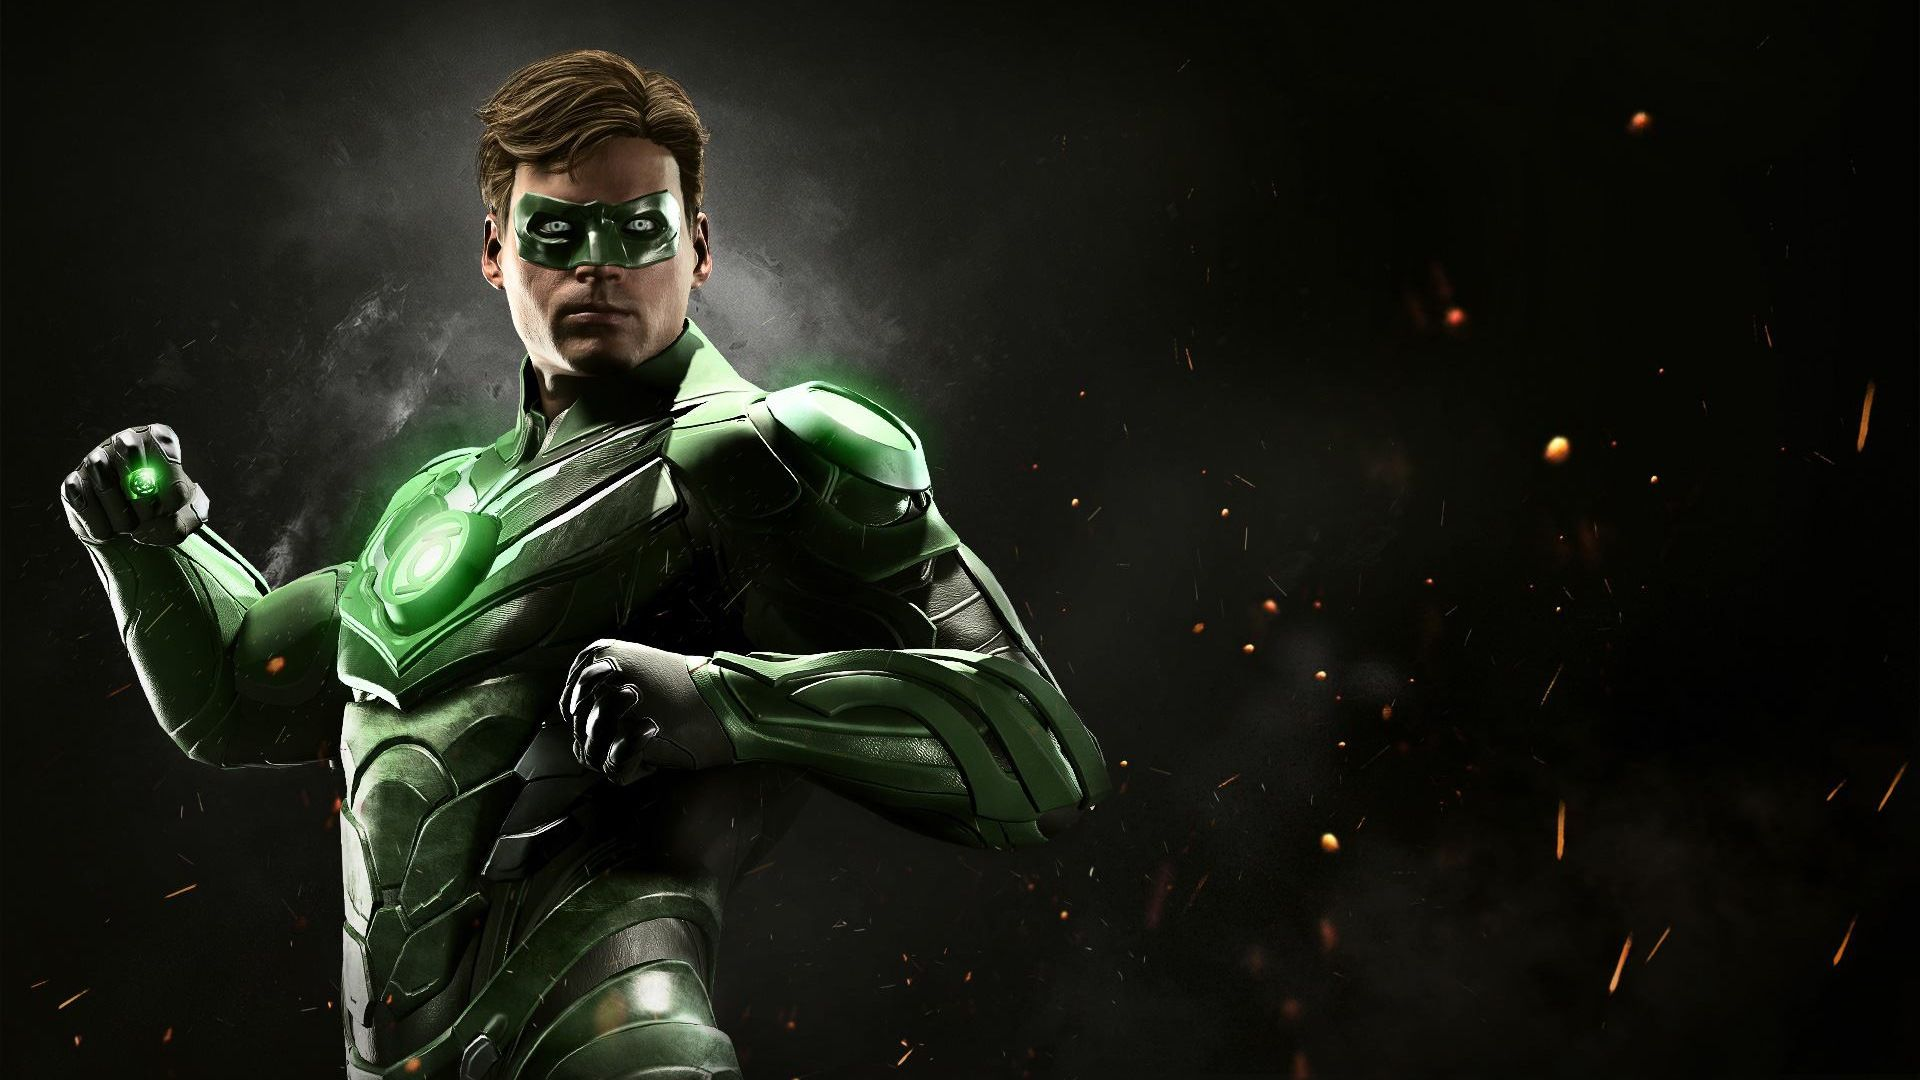 Green lantern injustice 2 game 1920x1080 wallpaper injustice 2 green lantern injustice 2 game 1920x1080 wallpaper voltagebd Image collections